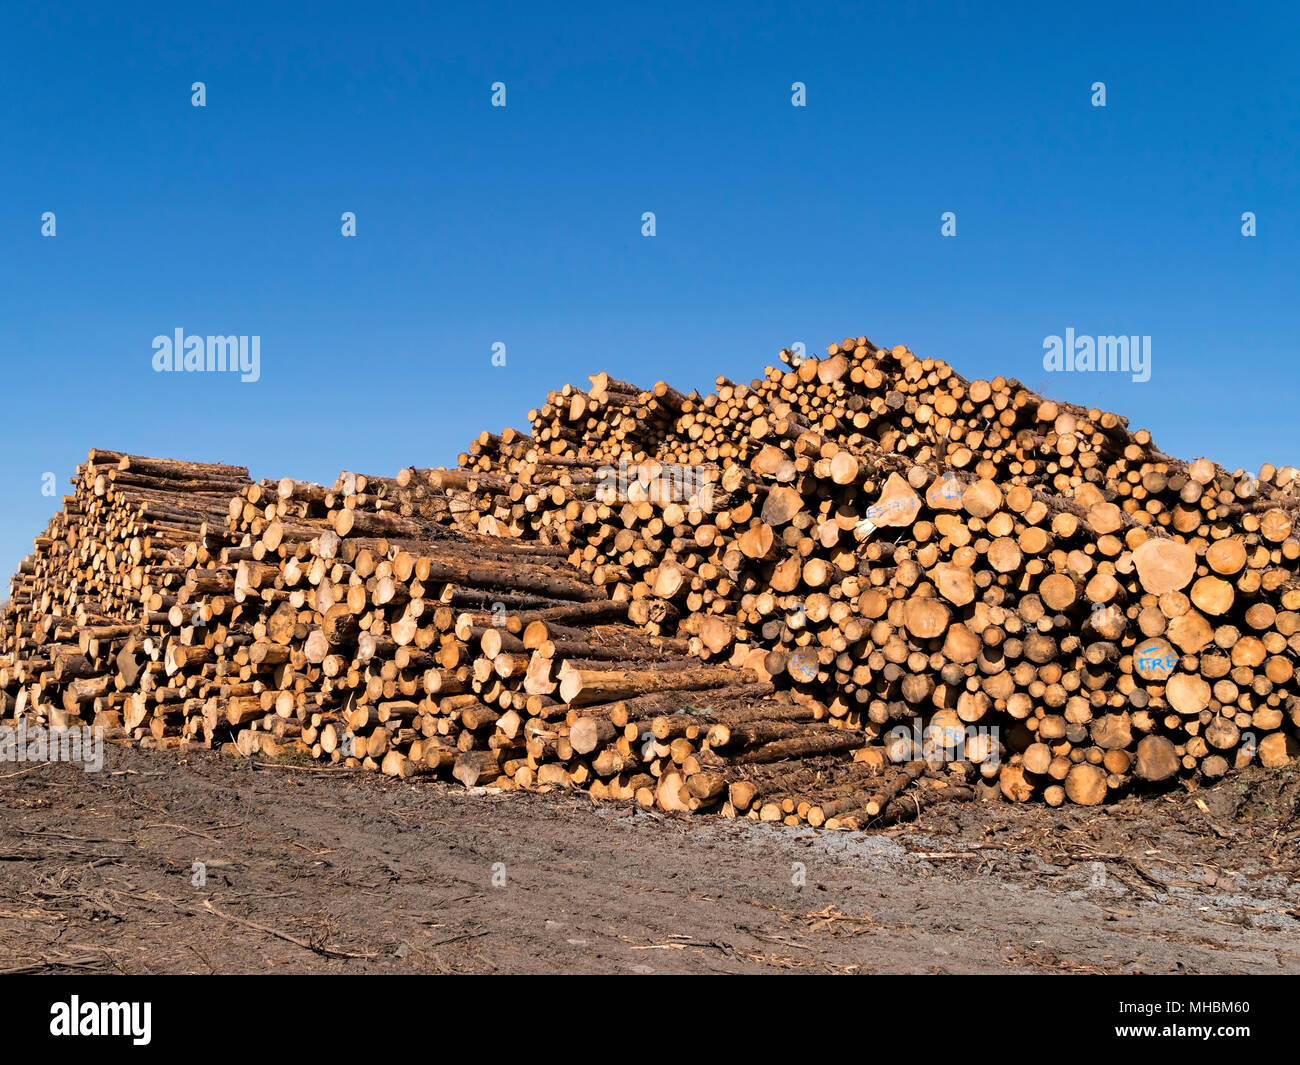 Large pile of cut freshly cut conifer timber logs with blue sky above, Torrin, Isle of Skye, Scotland, UK. - Stock Image